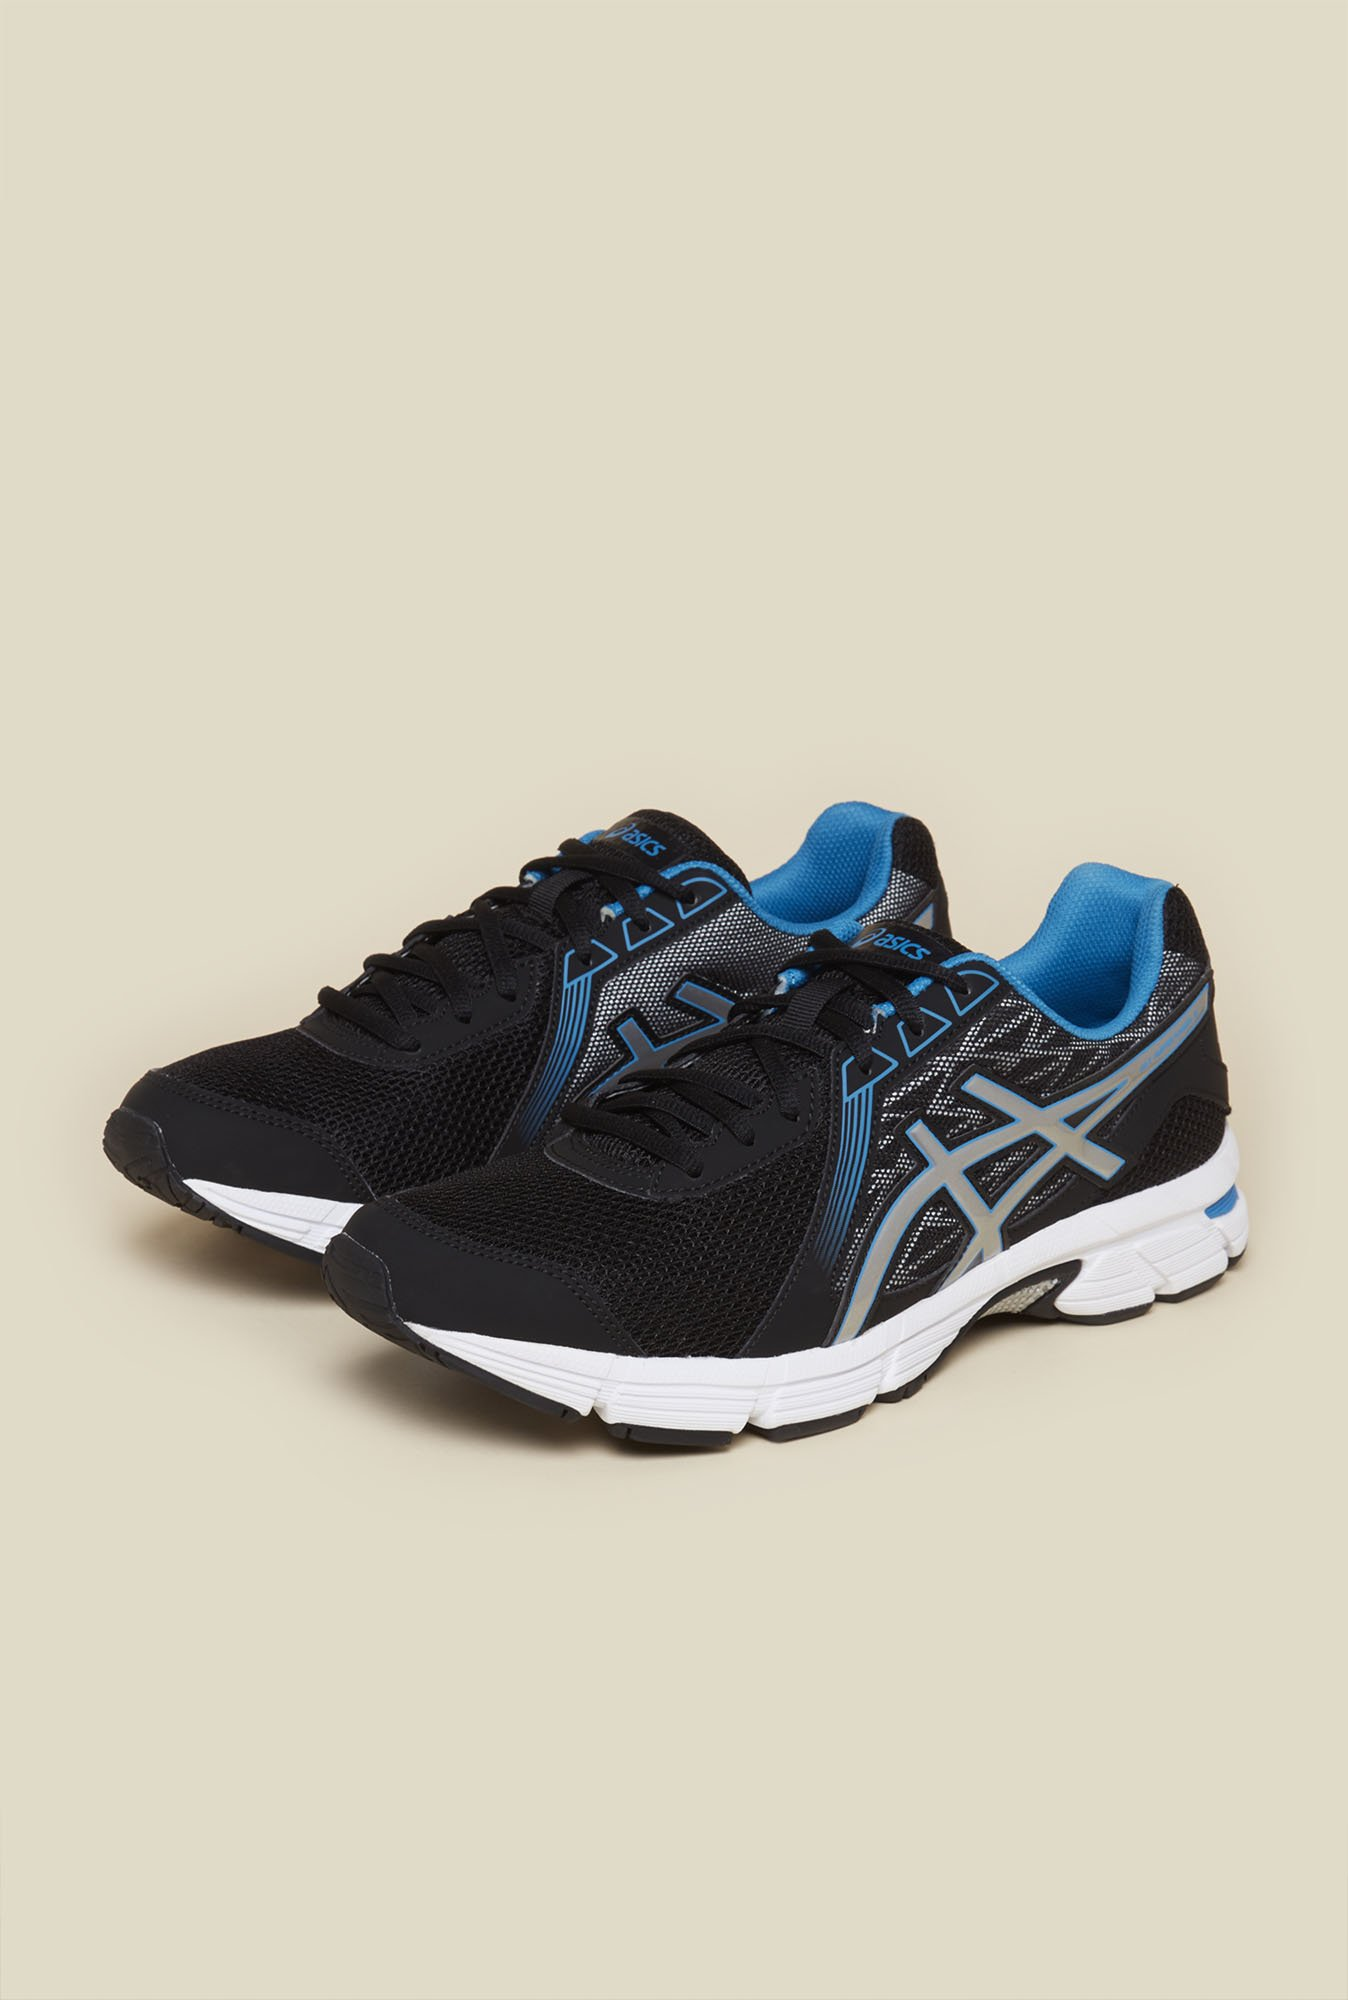 Asics GelImpression 8 Mens Running Shoes